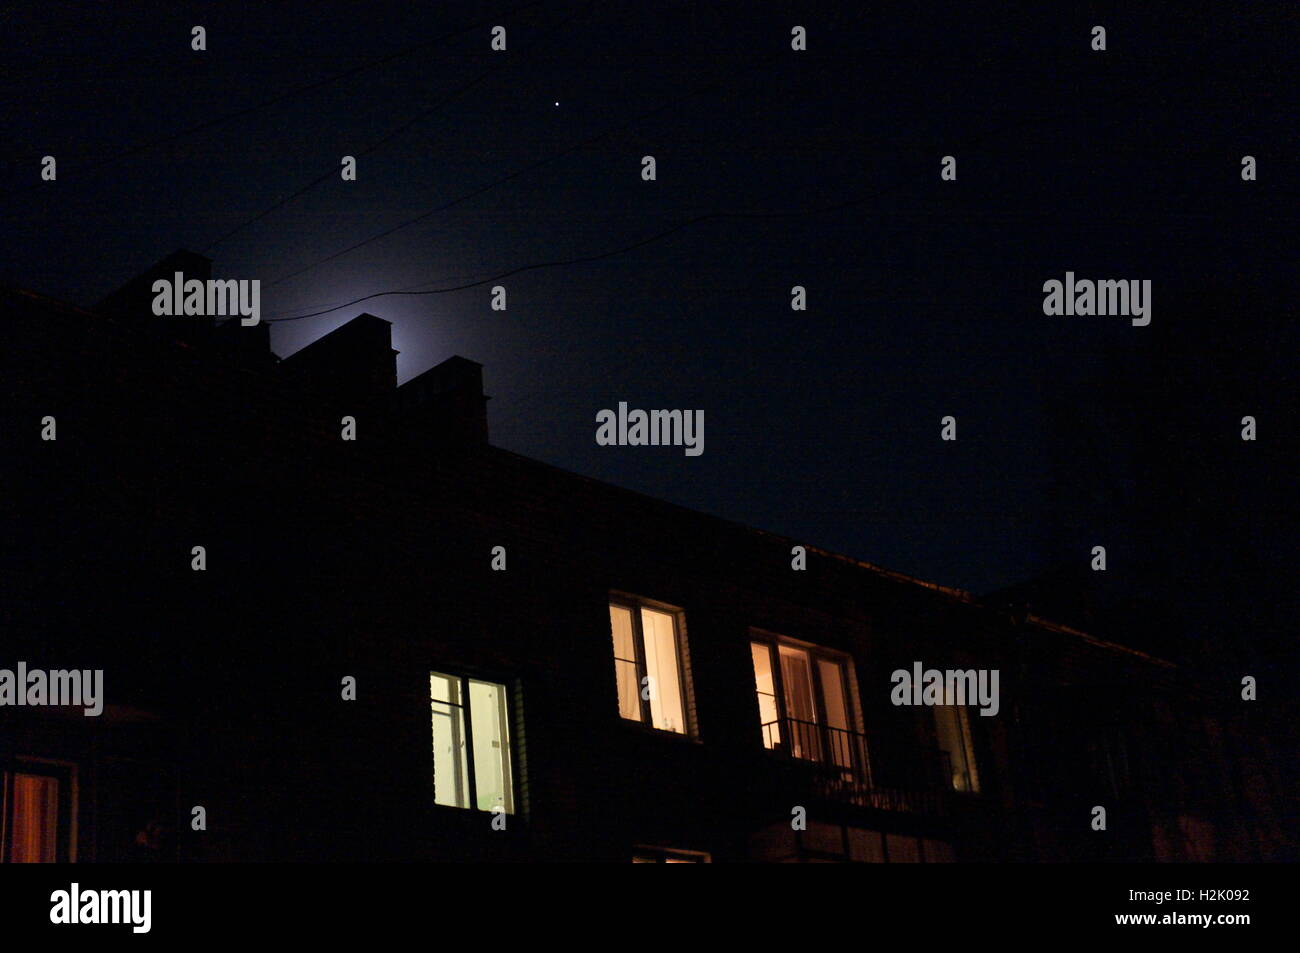 Moon glow over a rooftop of a house at night - Stock Image